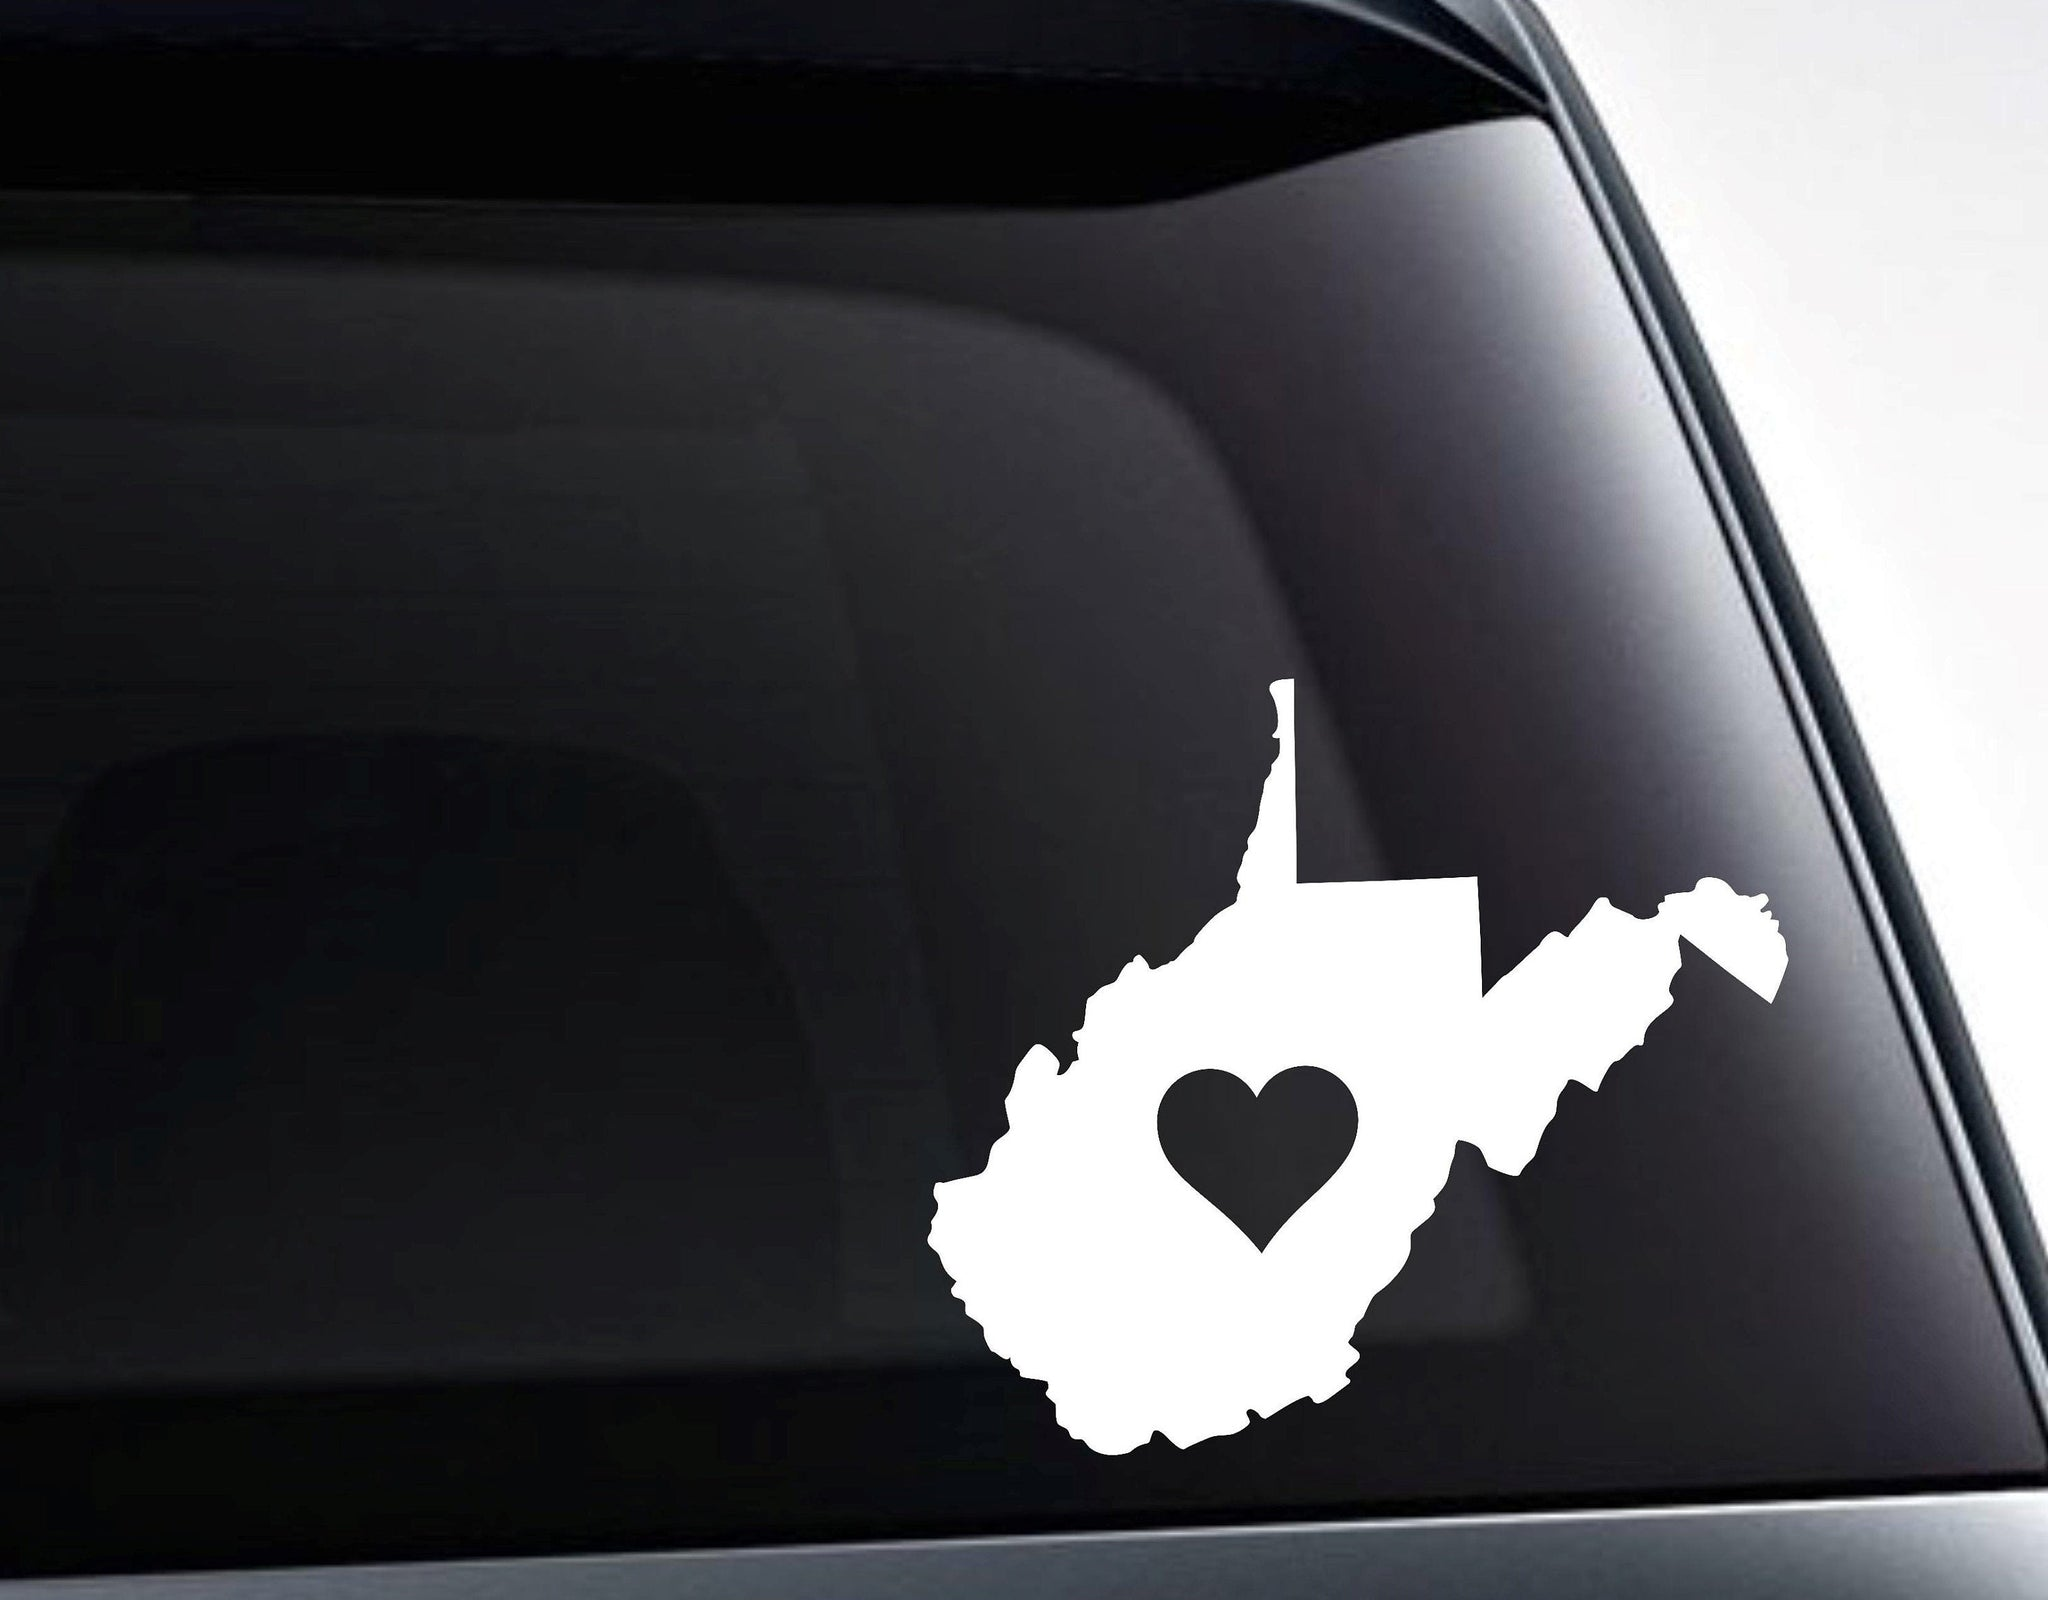 West Virginia Heart Love West Virginia Vinyl Decal Sticker / Decal for Cars, Laptops, Tumblers and More